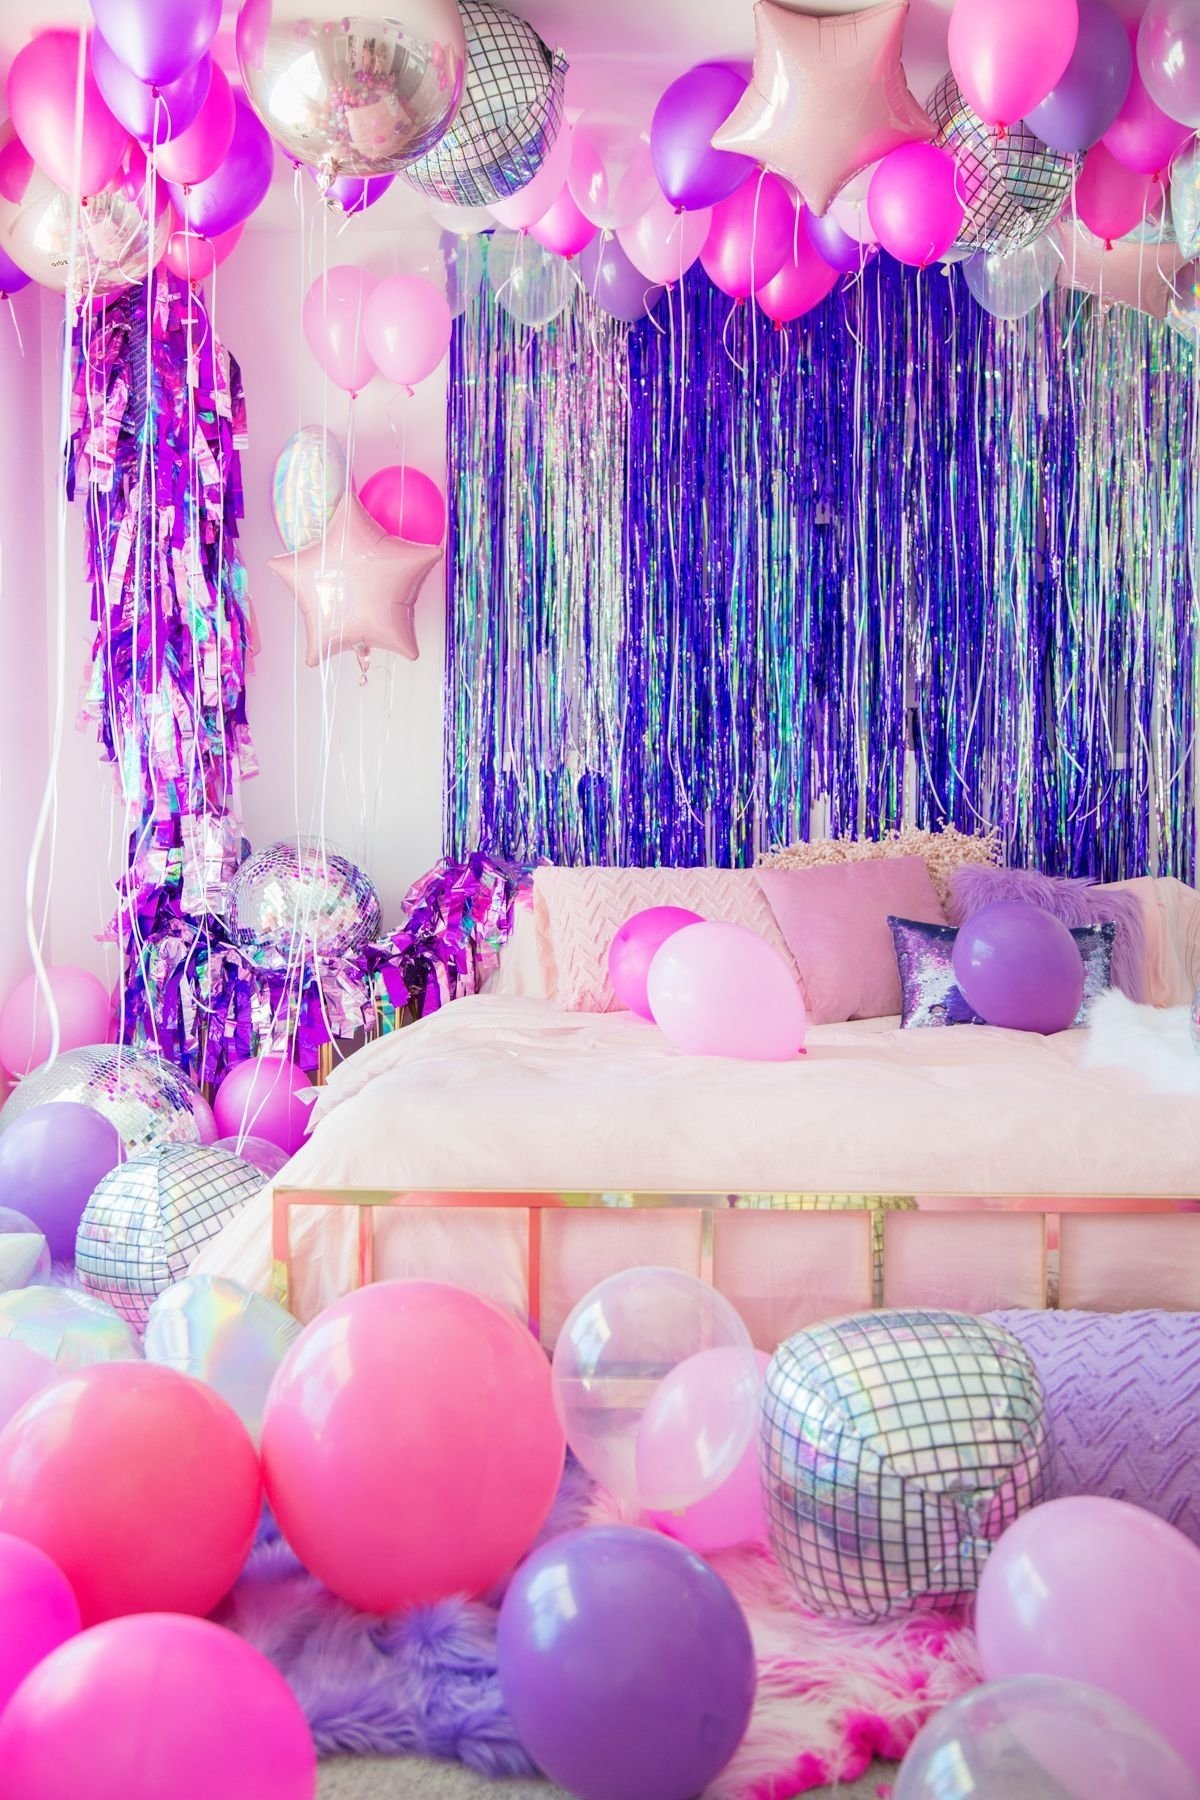 10 Fashionable Slumber Party Ideas For Girls no boys allowed a holographic neon slumber party slumber 2020